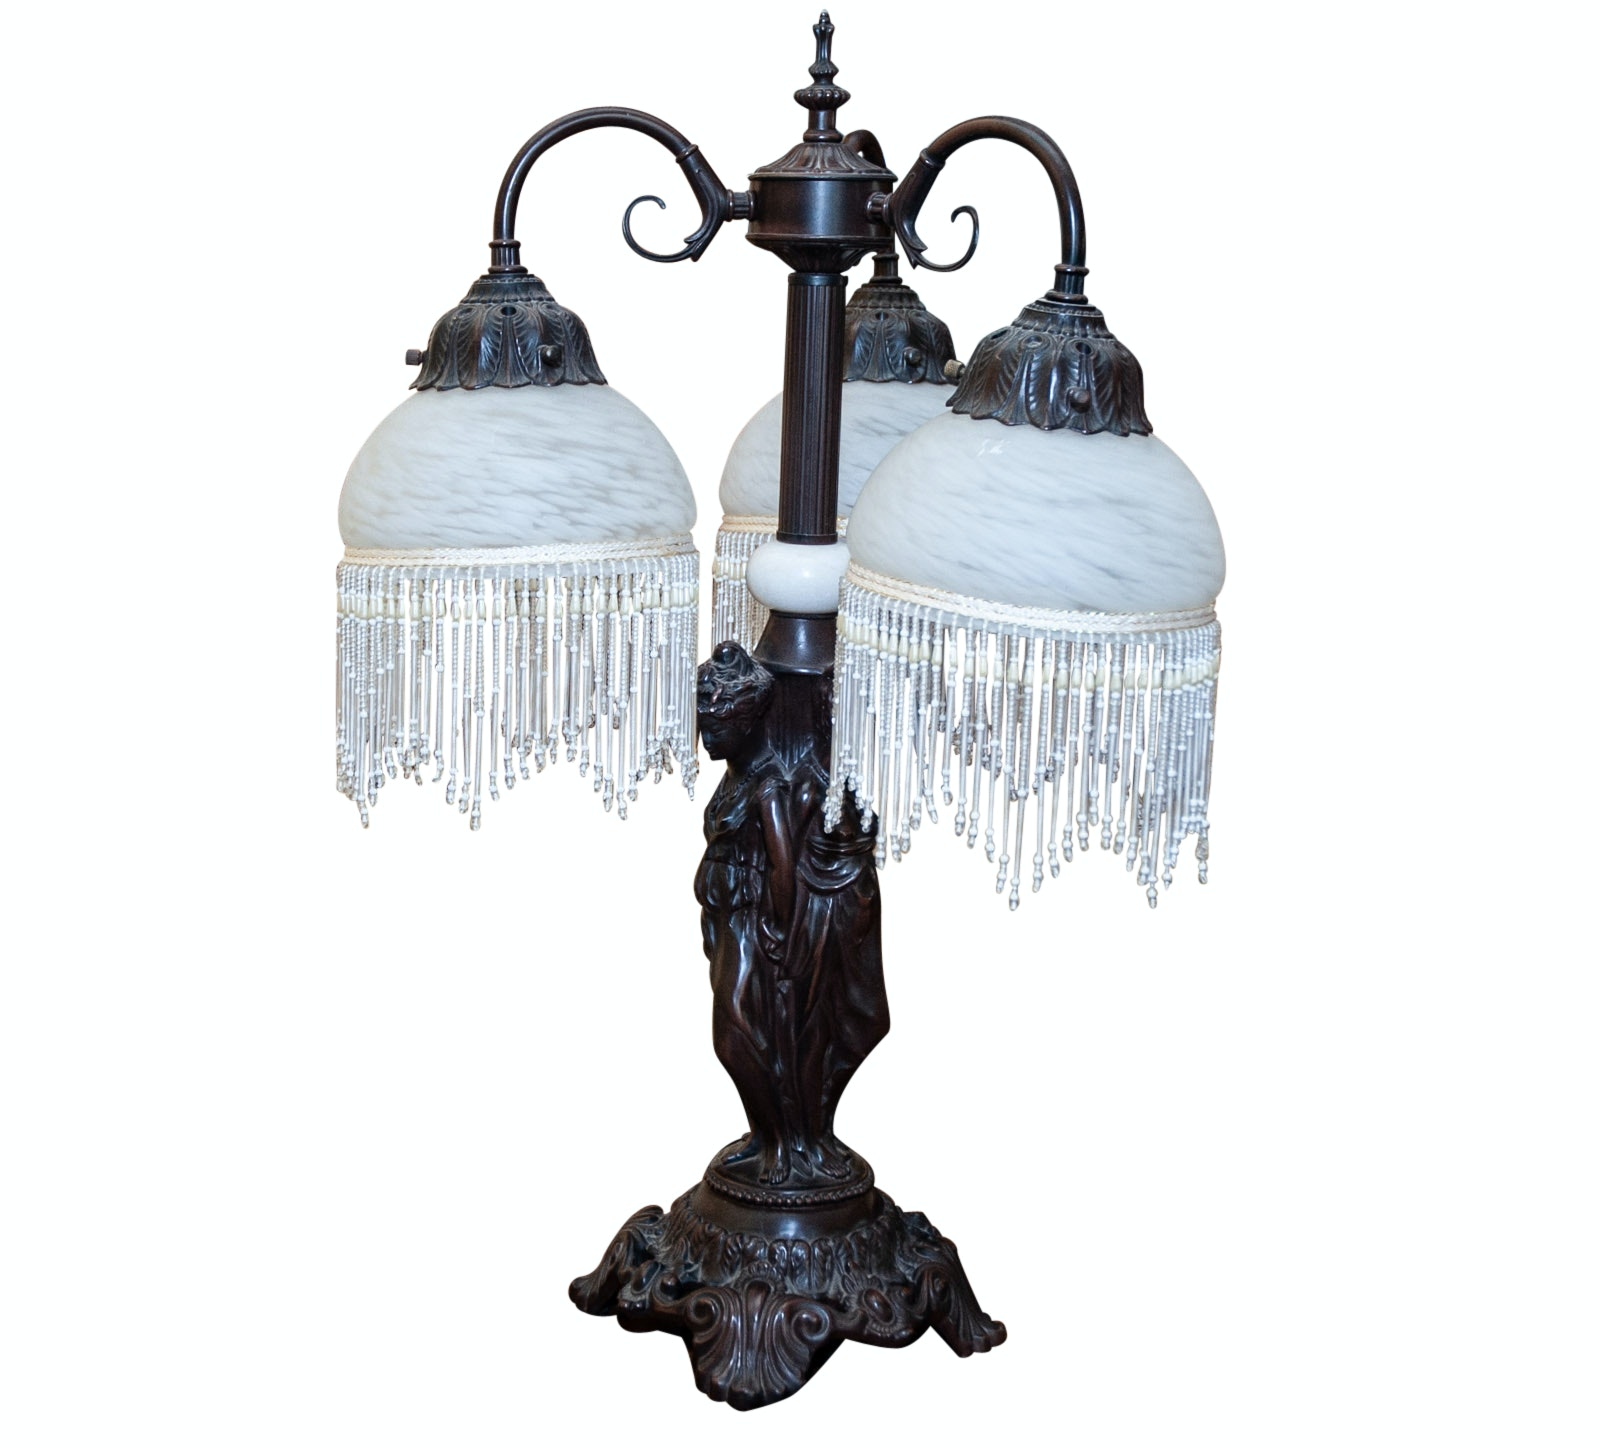 Reproduction Victorian Style Lamp with Beaded Trim Shades